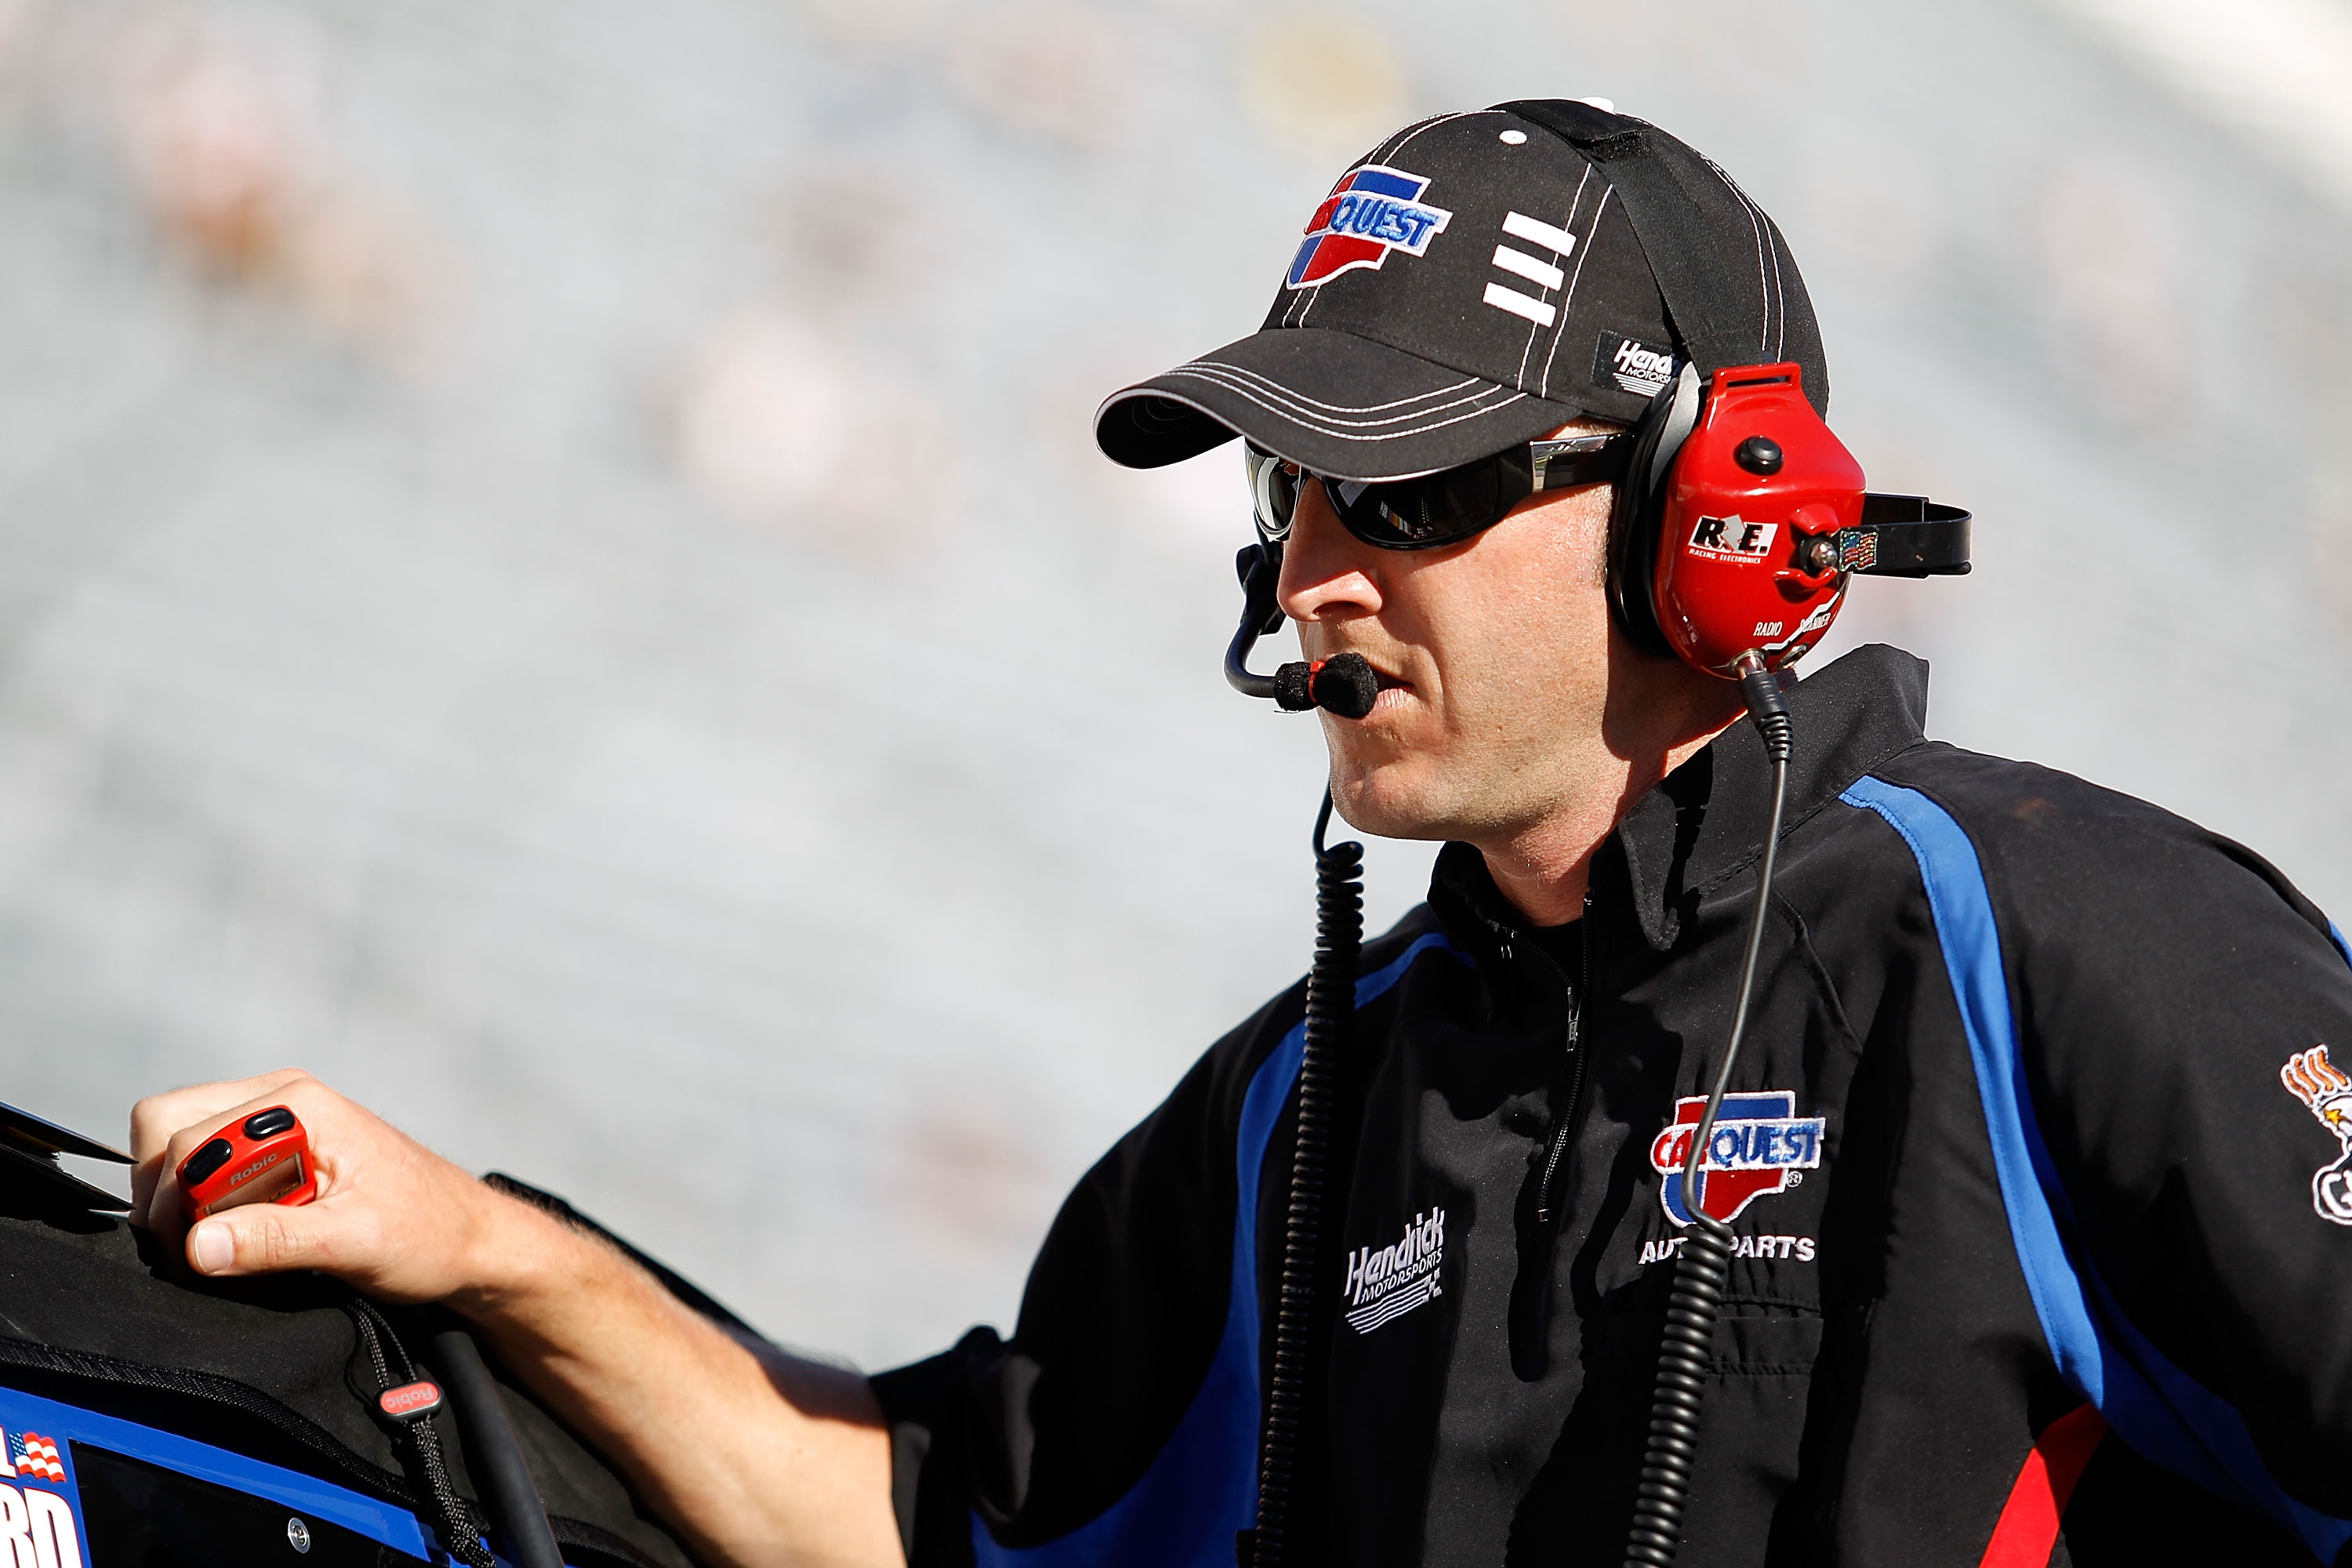 BRISTOL, TN - AUGUST 20:  Alan Gustafson, crew chief of the #5 CARQUEST Auto Parts Chevrolet, stands on the grid during qualifying for the NASCAR Sprint Cup Series IRWIN Tools Night Race at Bristol Motor Speedway on August 20, 2010 in Bristol, Tennessee.